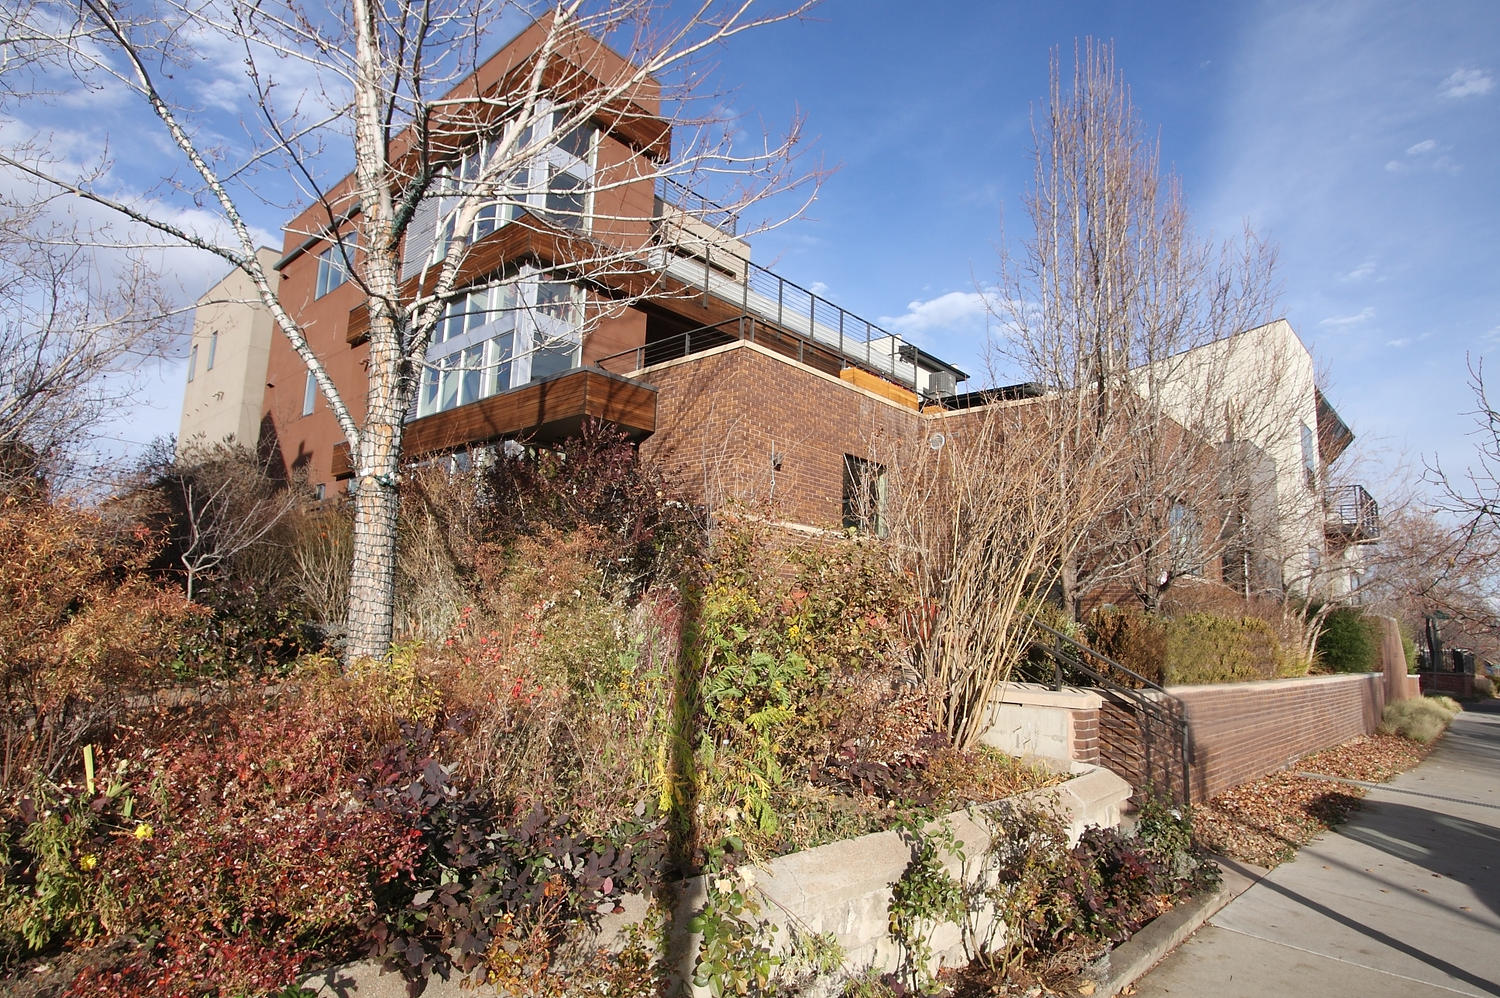 Condominium for Sale at Great location, great opportunity! 3917 W 32nd Avenue 101 Denver, Colorado, 80212 United States